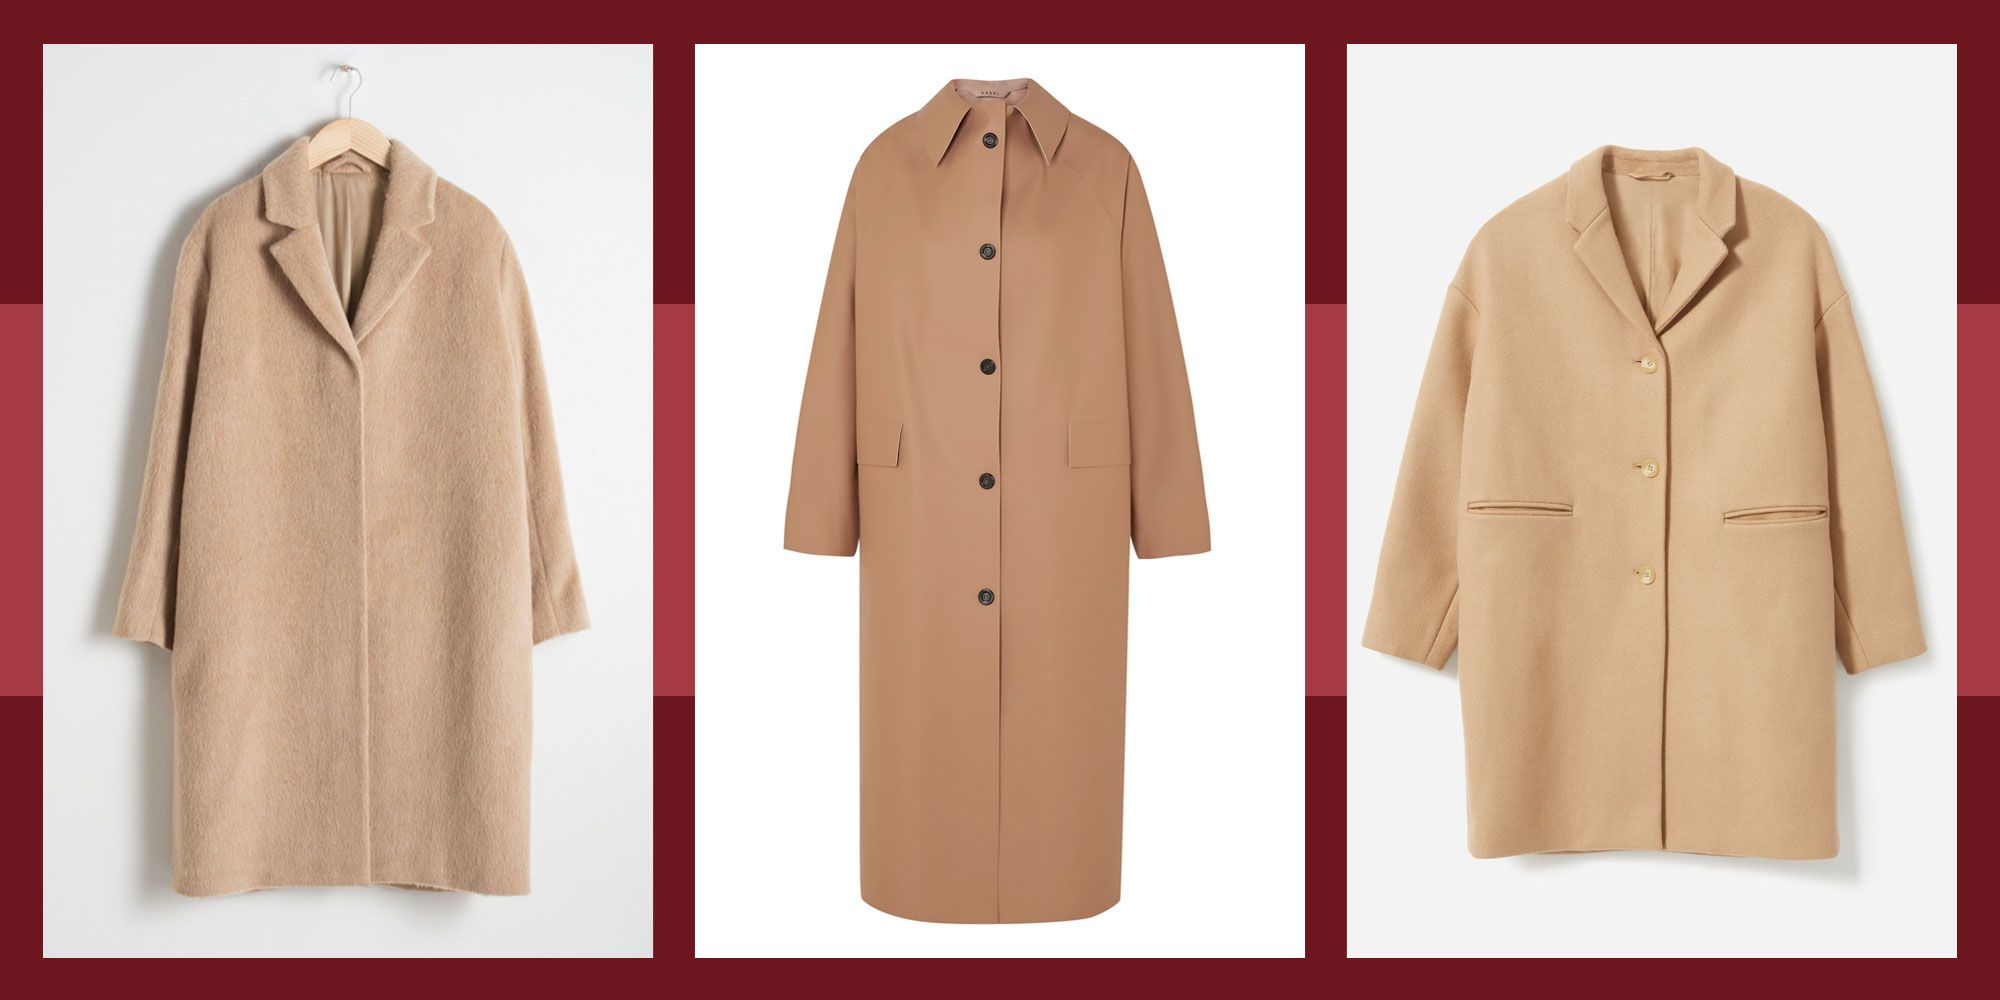 46f0b0f9243 17 Best Camel Coats to Buy - Top Classic and New Camel Coat Styles